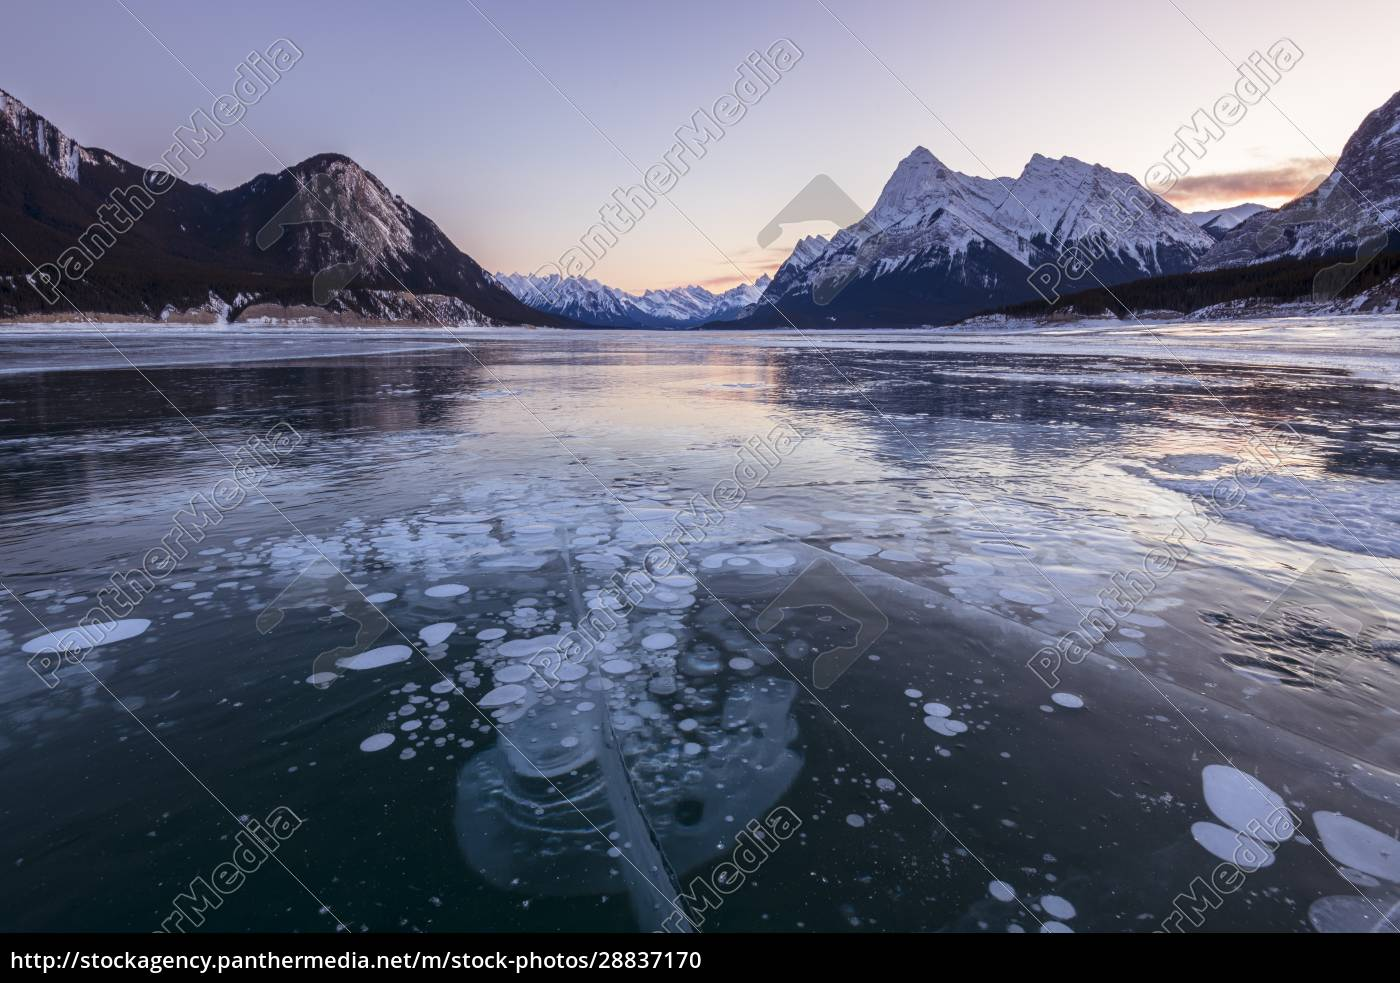 snow, capped, mountains, with, methane, bubbles - 28837170